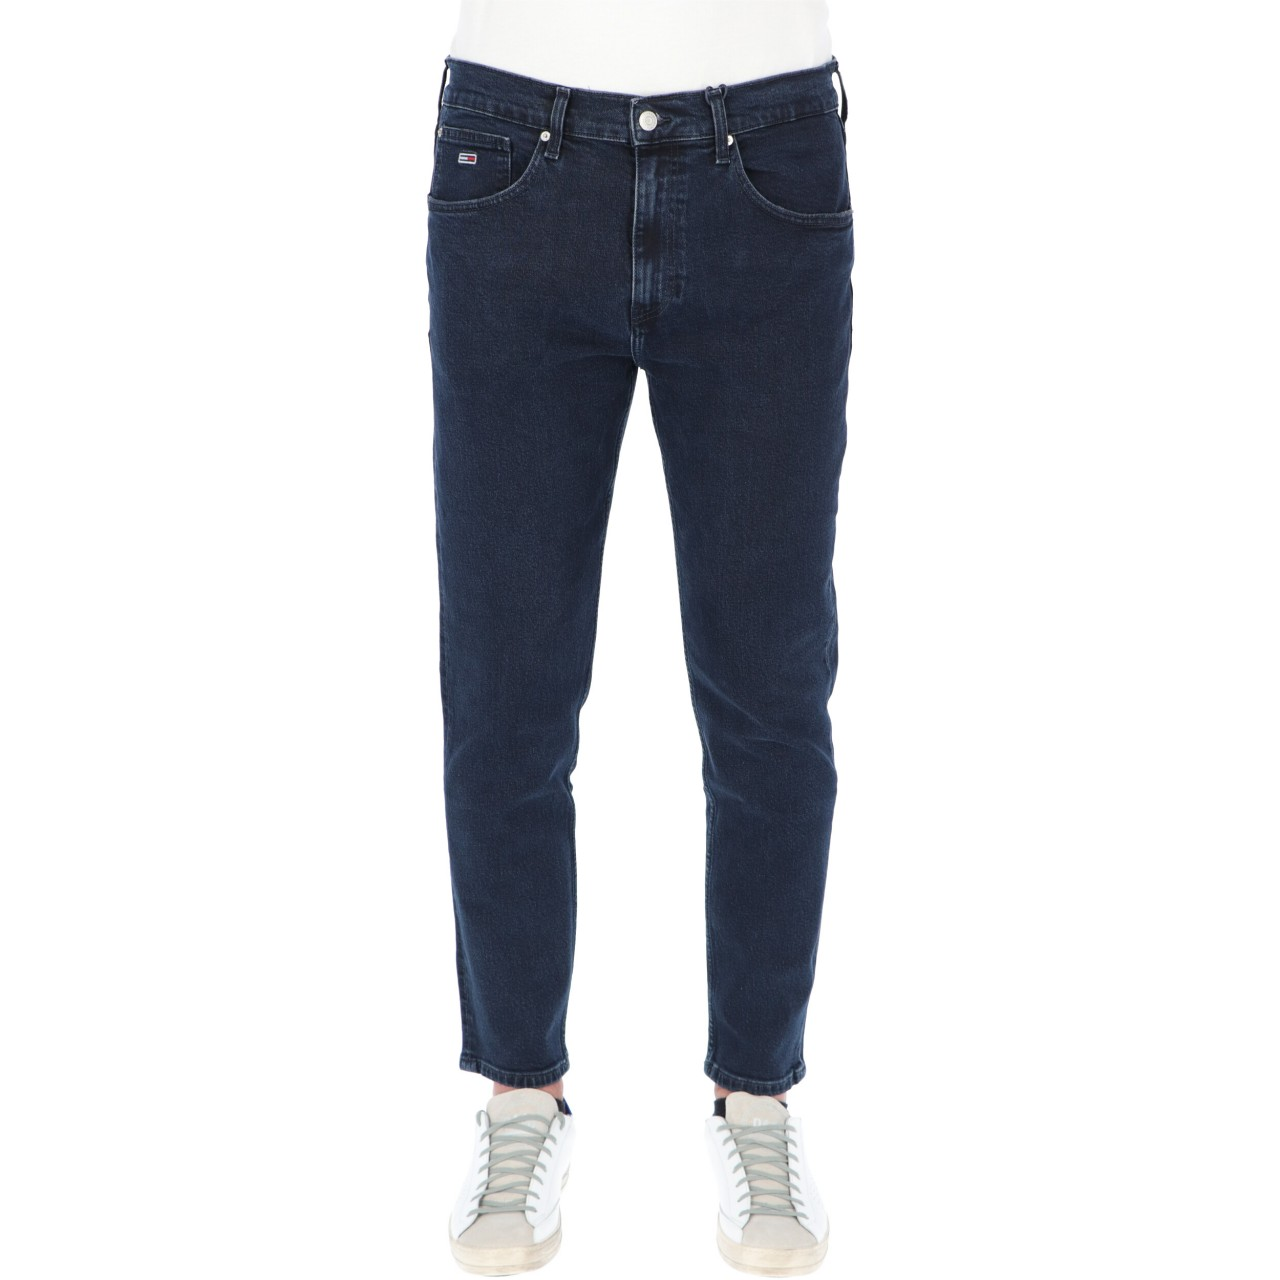 Tommy hilfiger Uomo Jeans Tommy Hilfiger Uomo Taperad Relaxed Rey L32 09765O